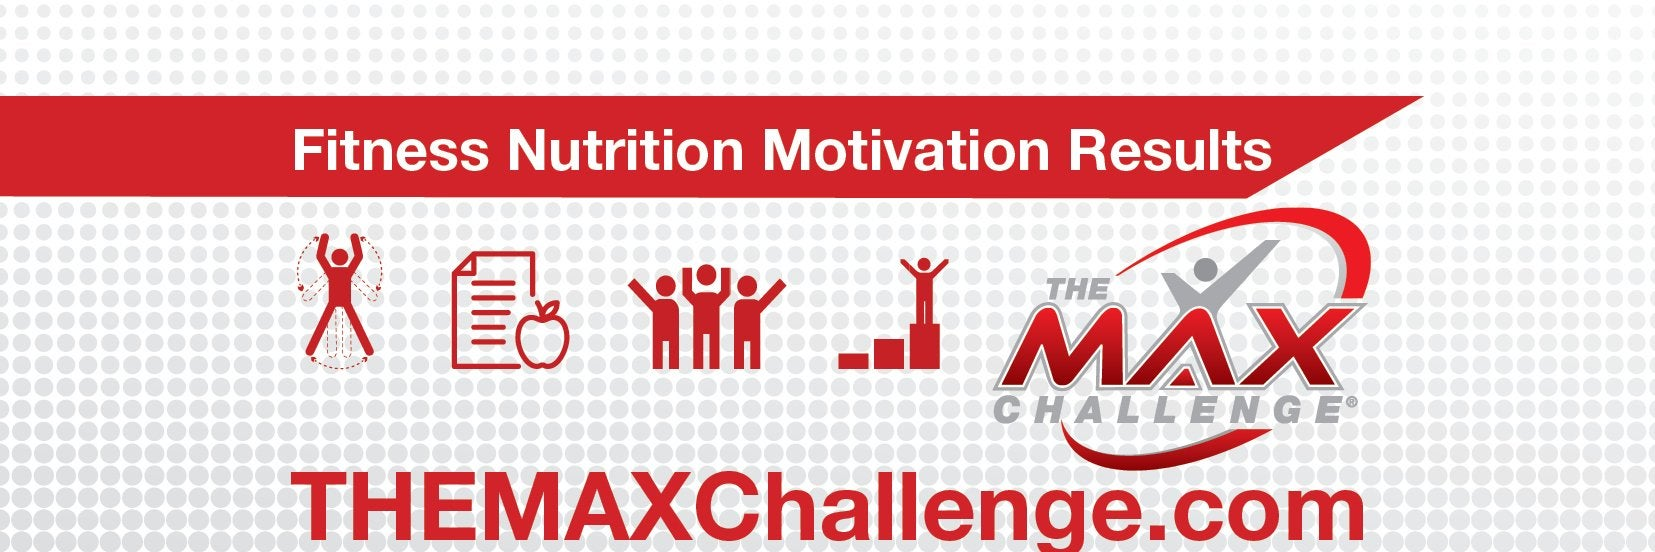 The Max Challenge